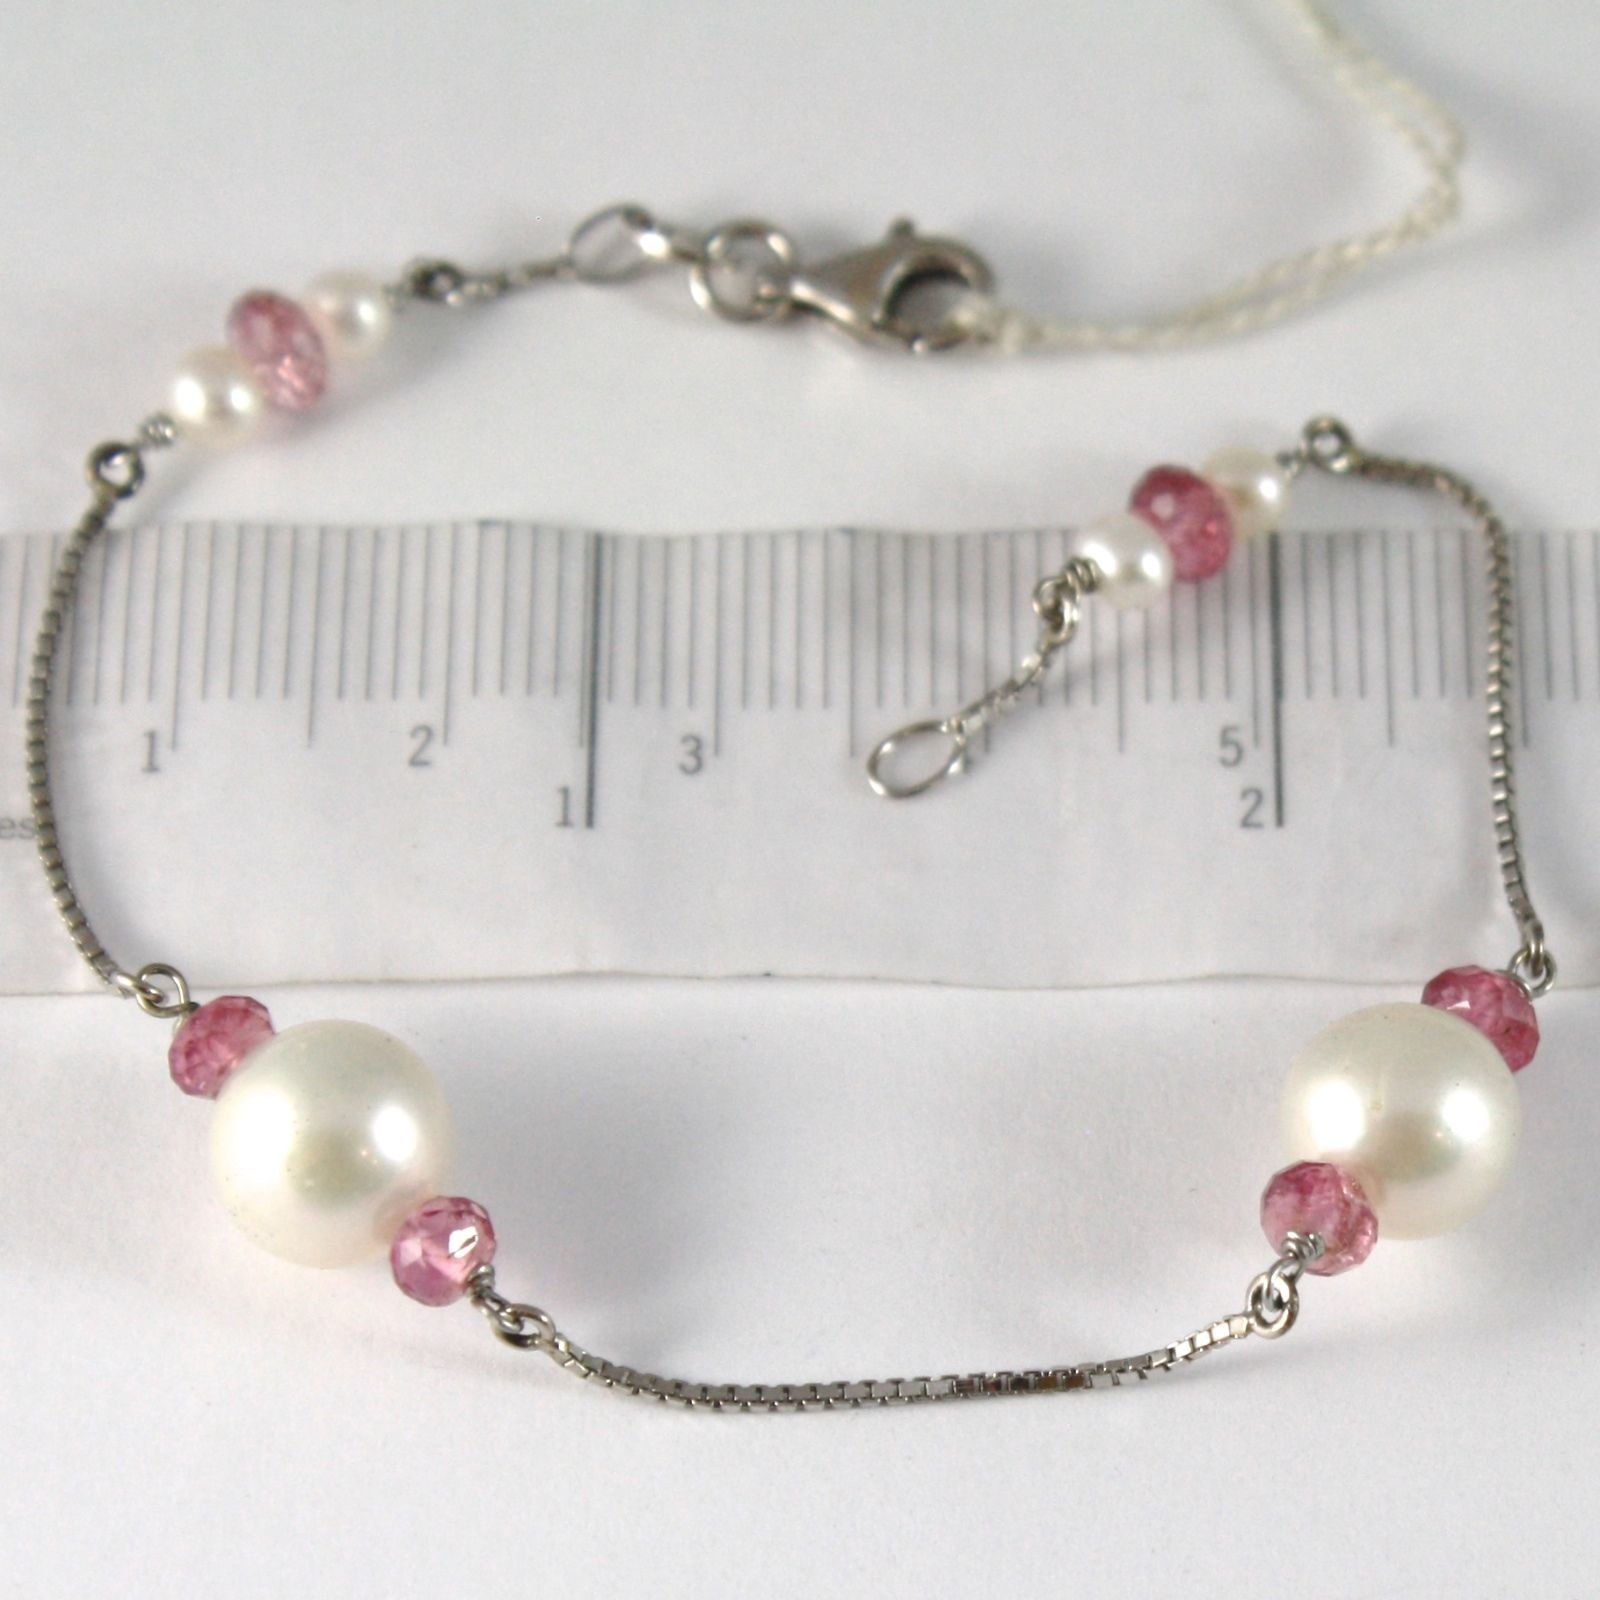 BRACELET WHITE GOLD 750 18K, WHITE PEARLS 9 MM, TOURMALINE RED, CHAIN VENETIAN